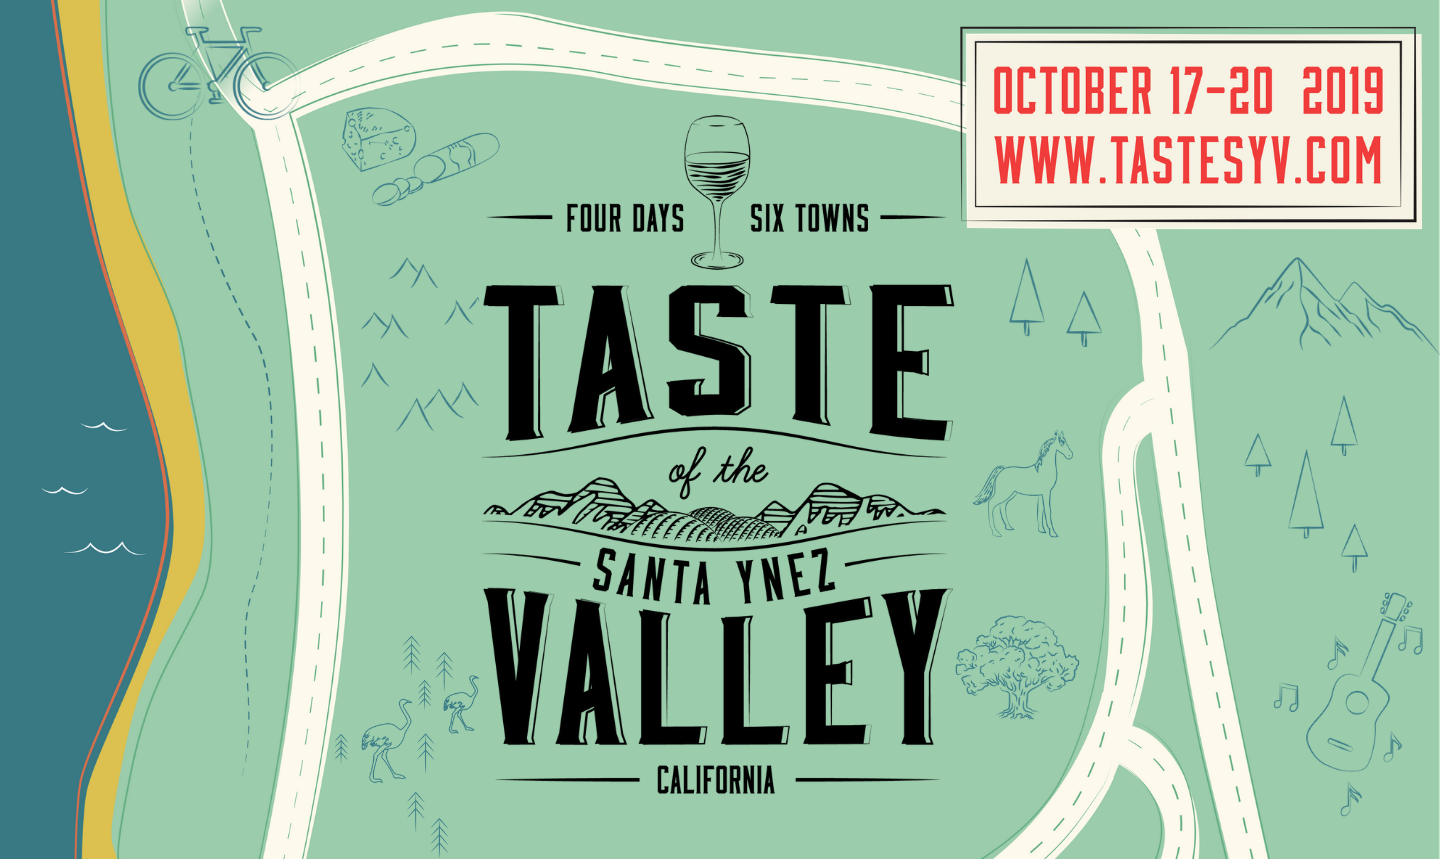 A Taste of the Santa Ynez Valley